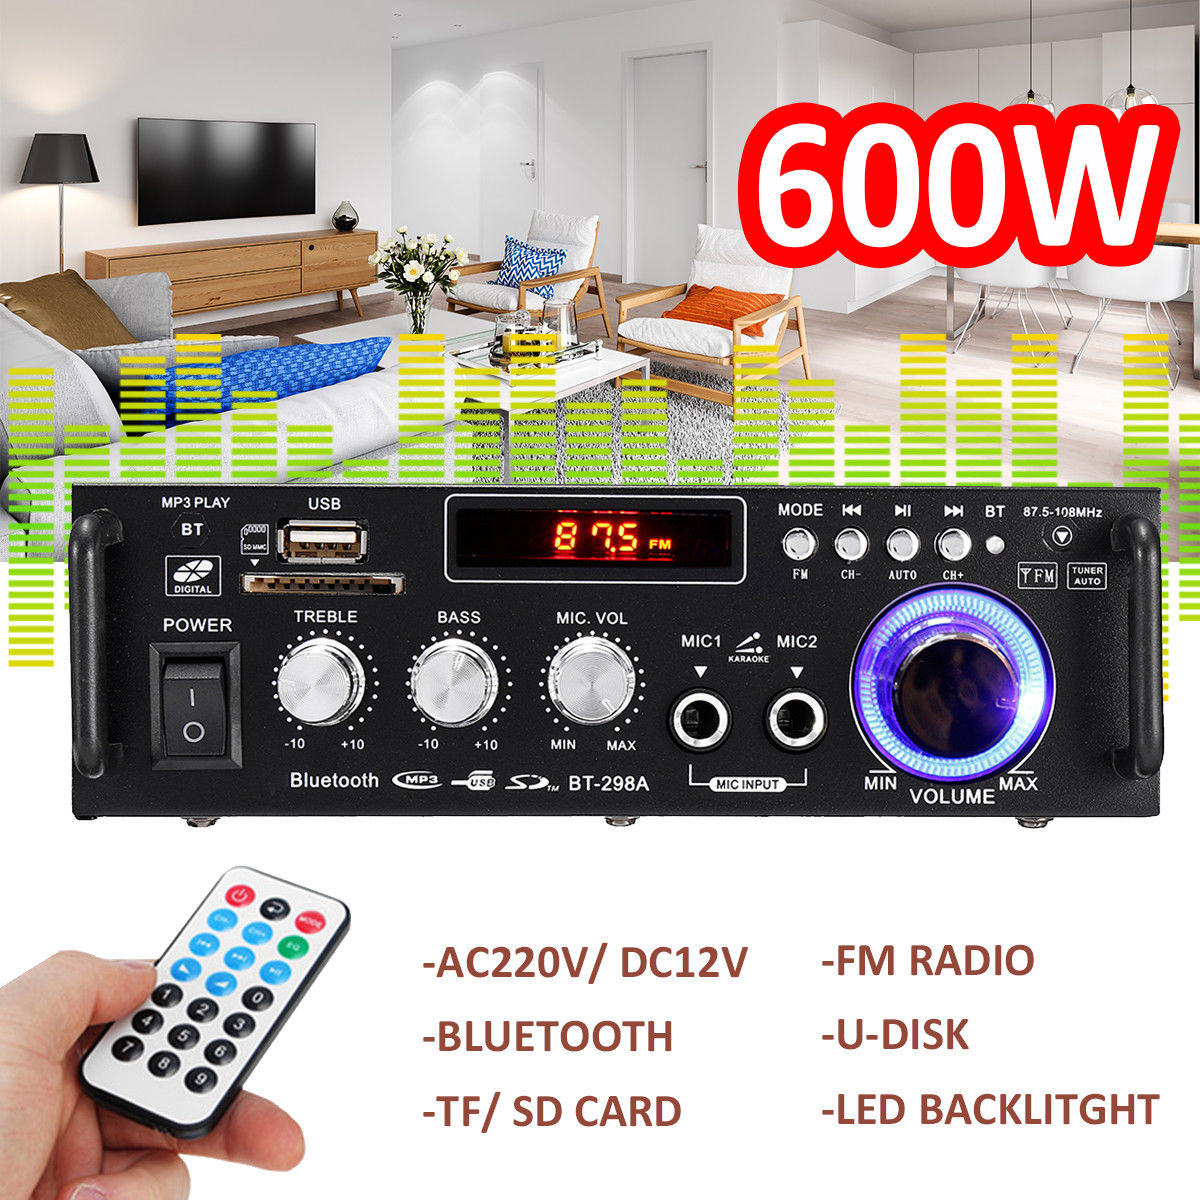 600w Home Amplifiers Audio bluetooth Amplifier Subwoofer Amplifier Home Theater Sound System Mini Amplifier Professional(China)